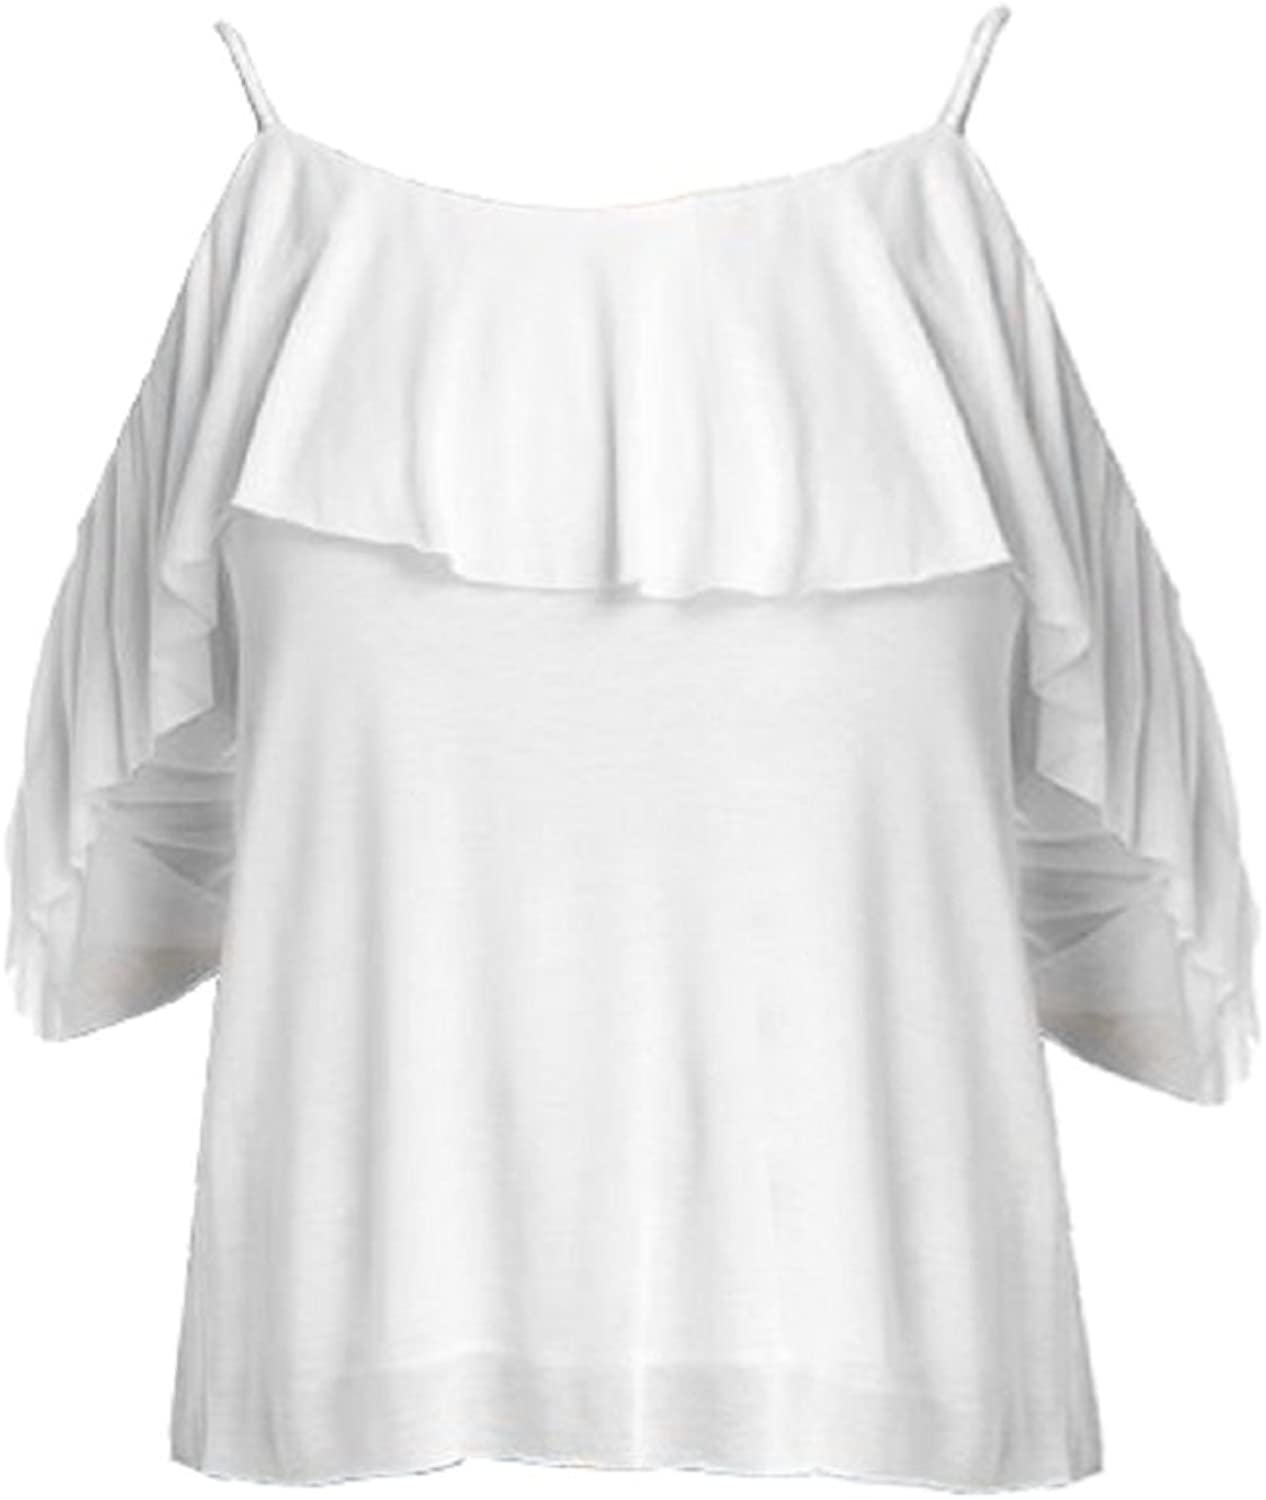 Bailey 44 White Cold Shoulder Havana Layered Top